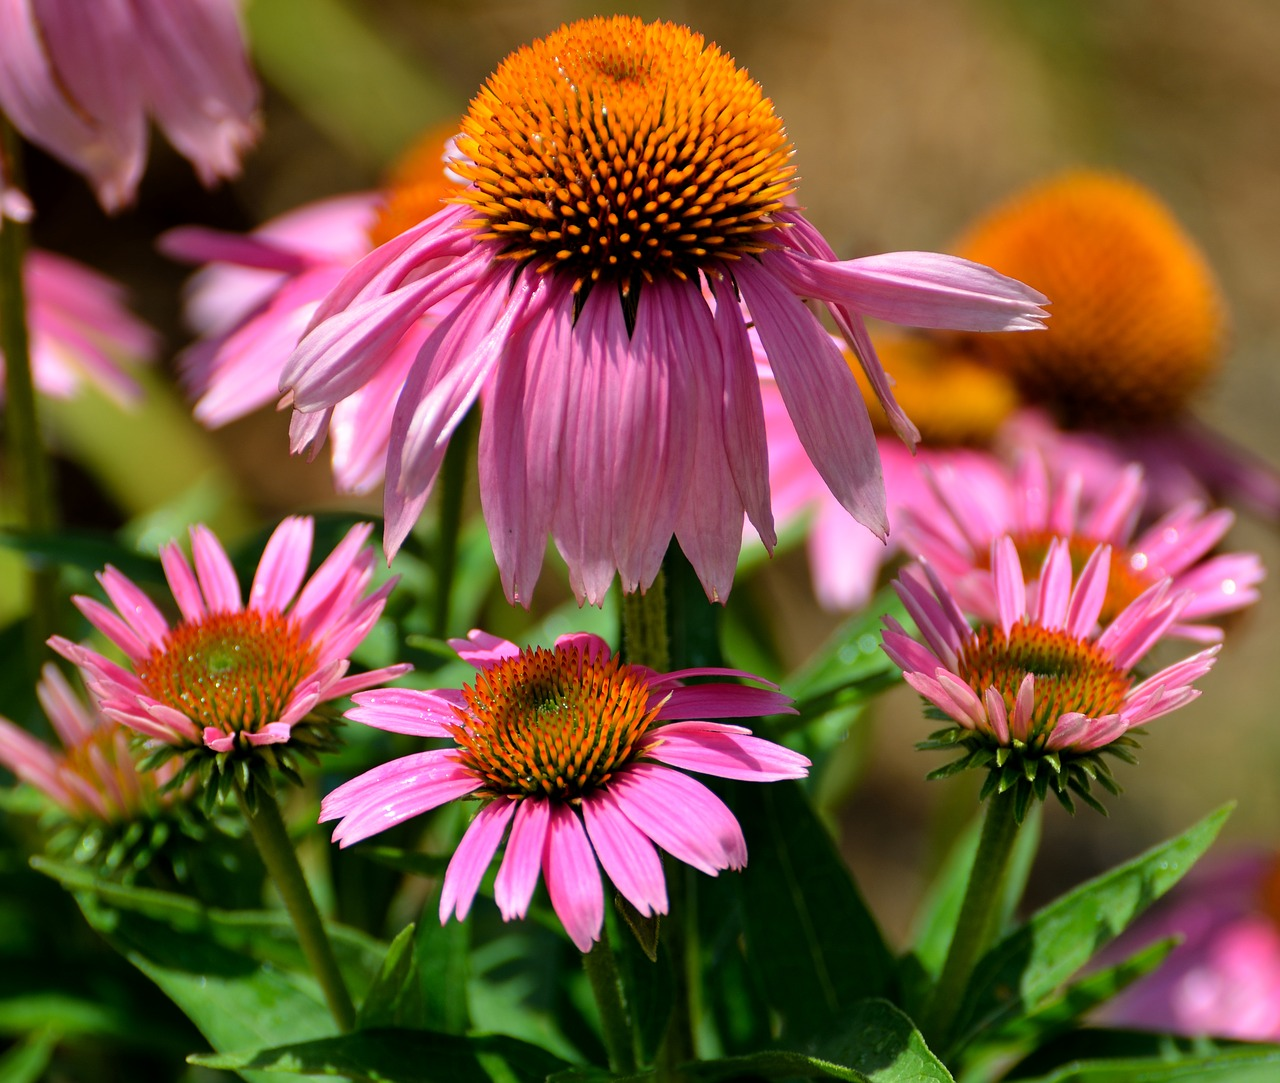 cone-flowers-1624684_1280